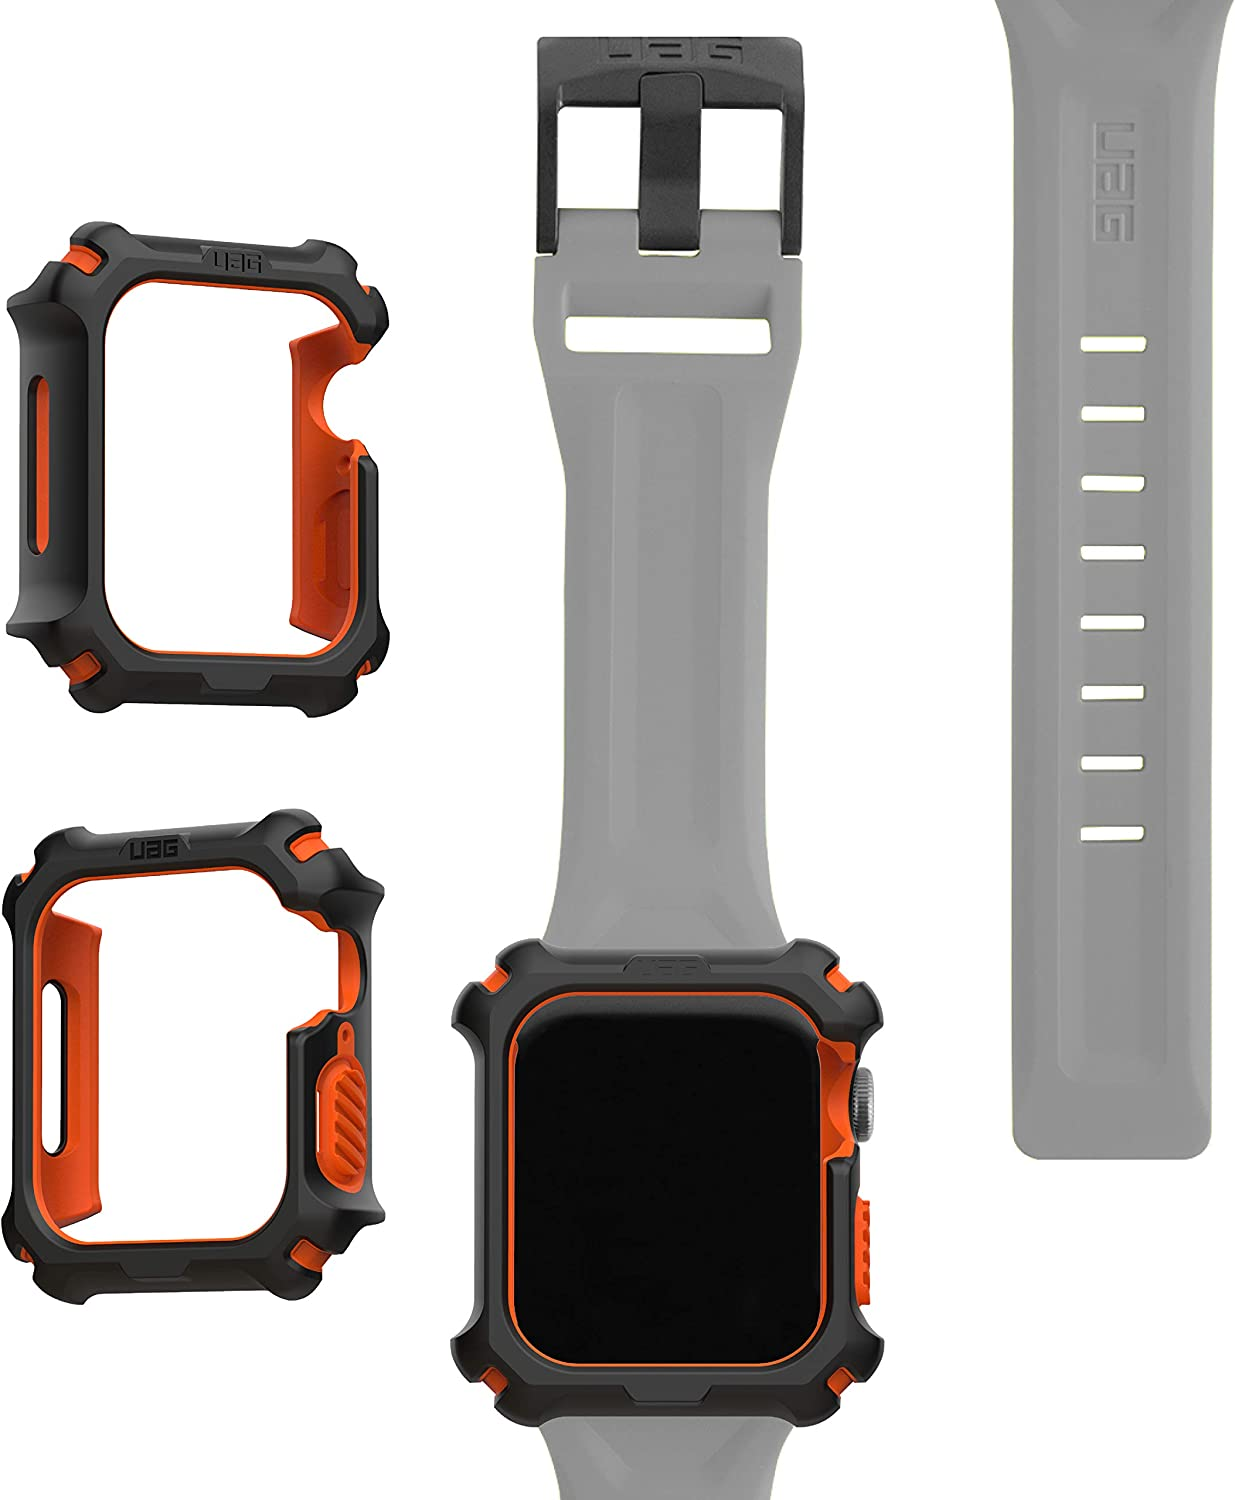 UAG Apple Watch Band 44mm 42mm, iWatch Series 6/5/4/Watch SE Replacement Strap, Scout Silver + Apple Watch Case 44mm, iWatch Series 6/5/4/Watch SE Protective Bumper Case, Black/Orange